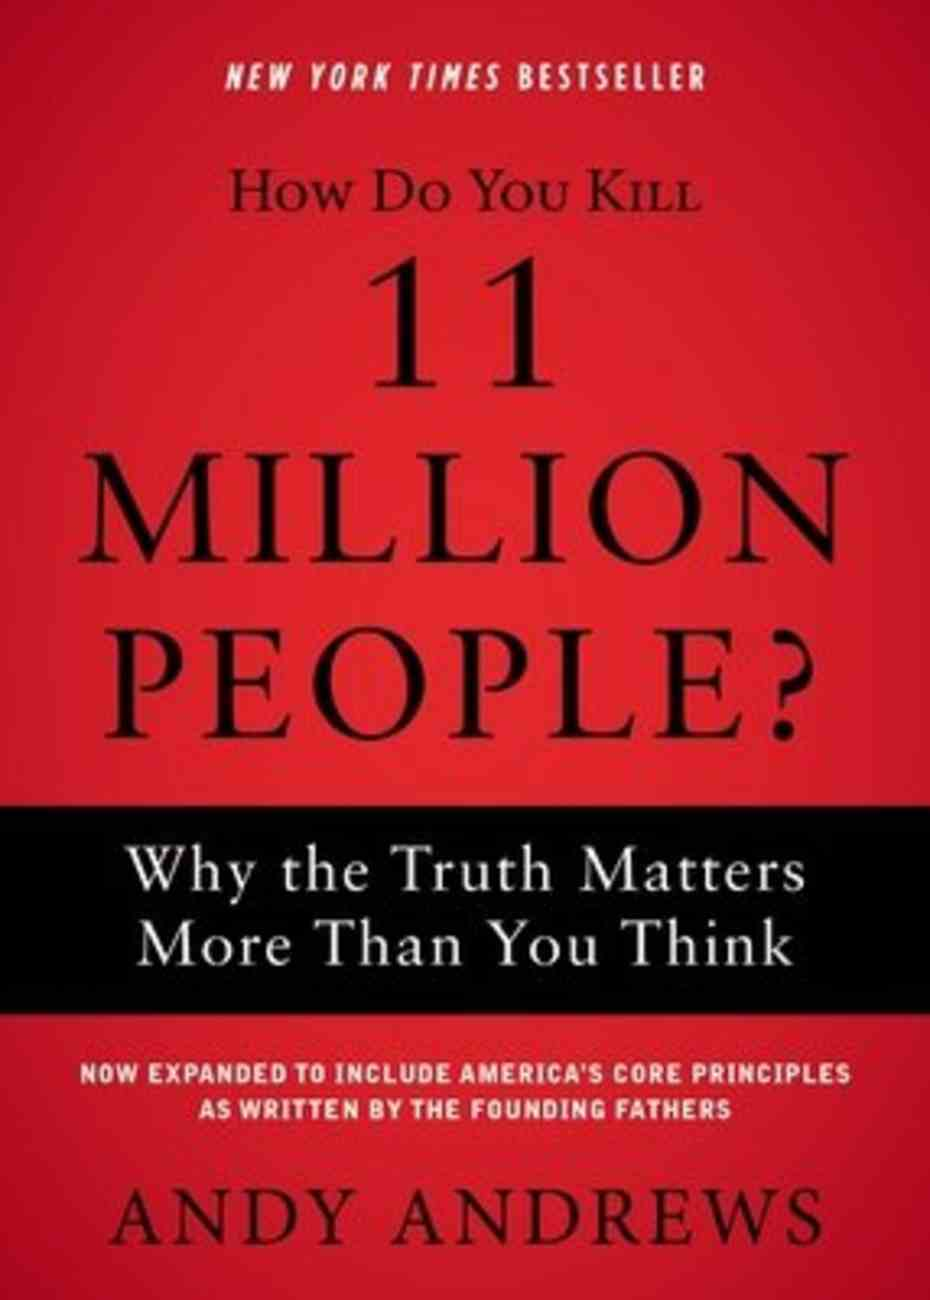 How Do You Kill 11 Million People?: Why the Truth Matters More Than You Think Paperback